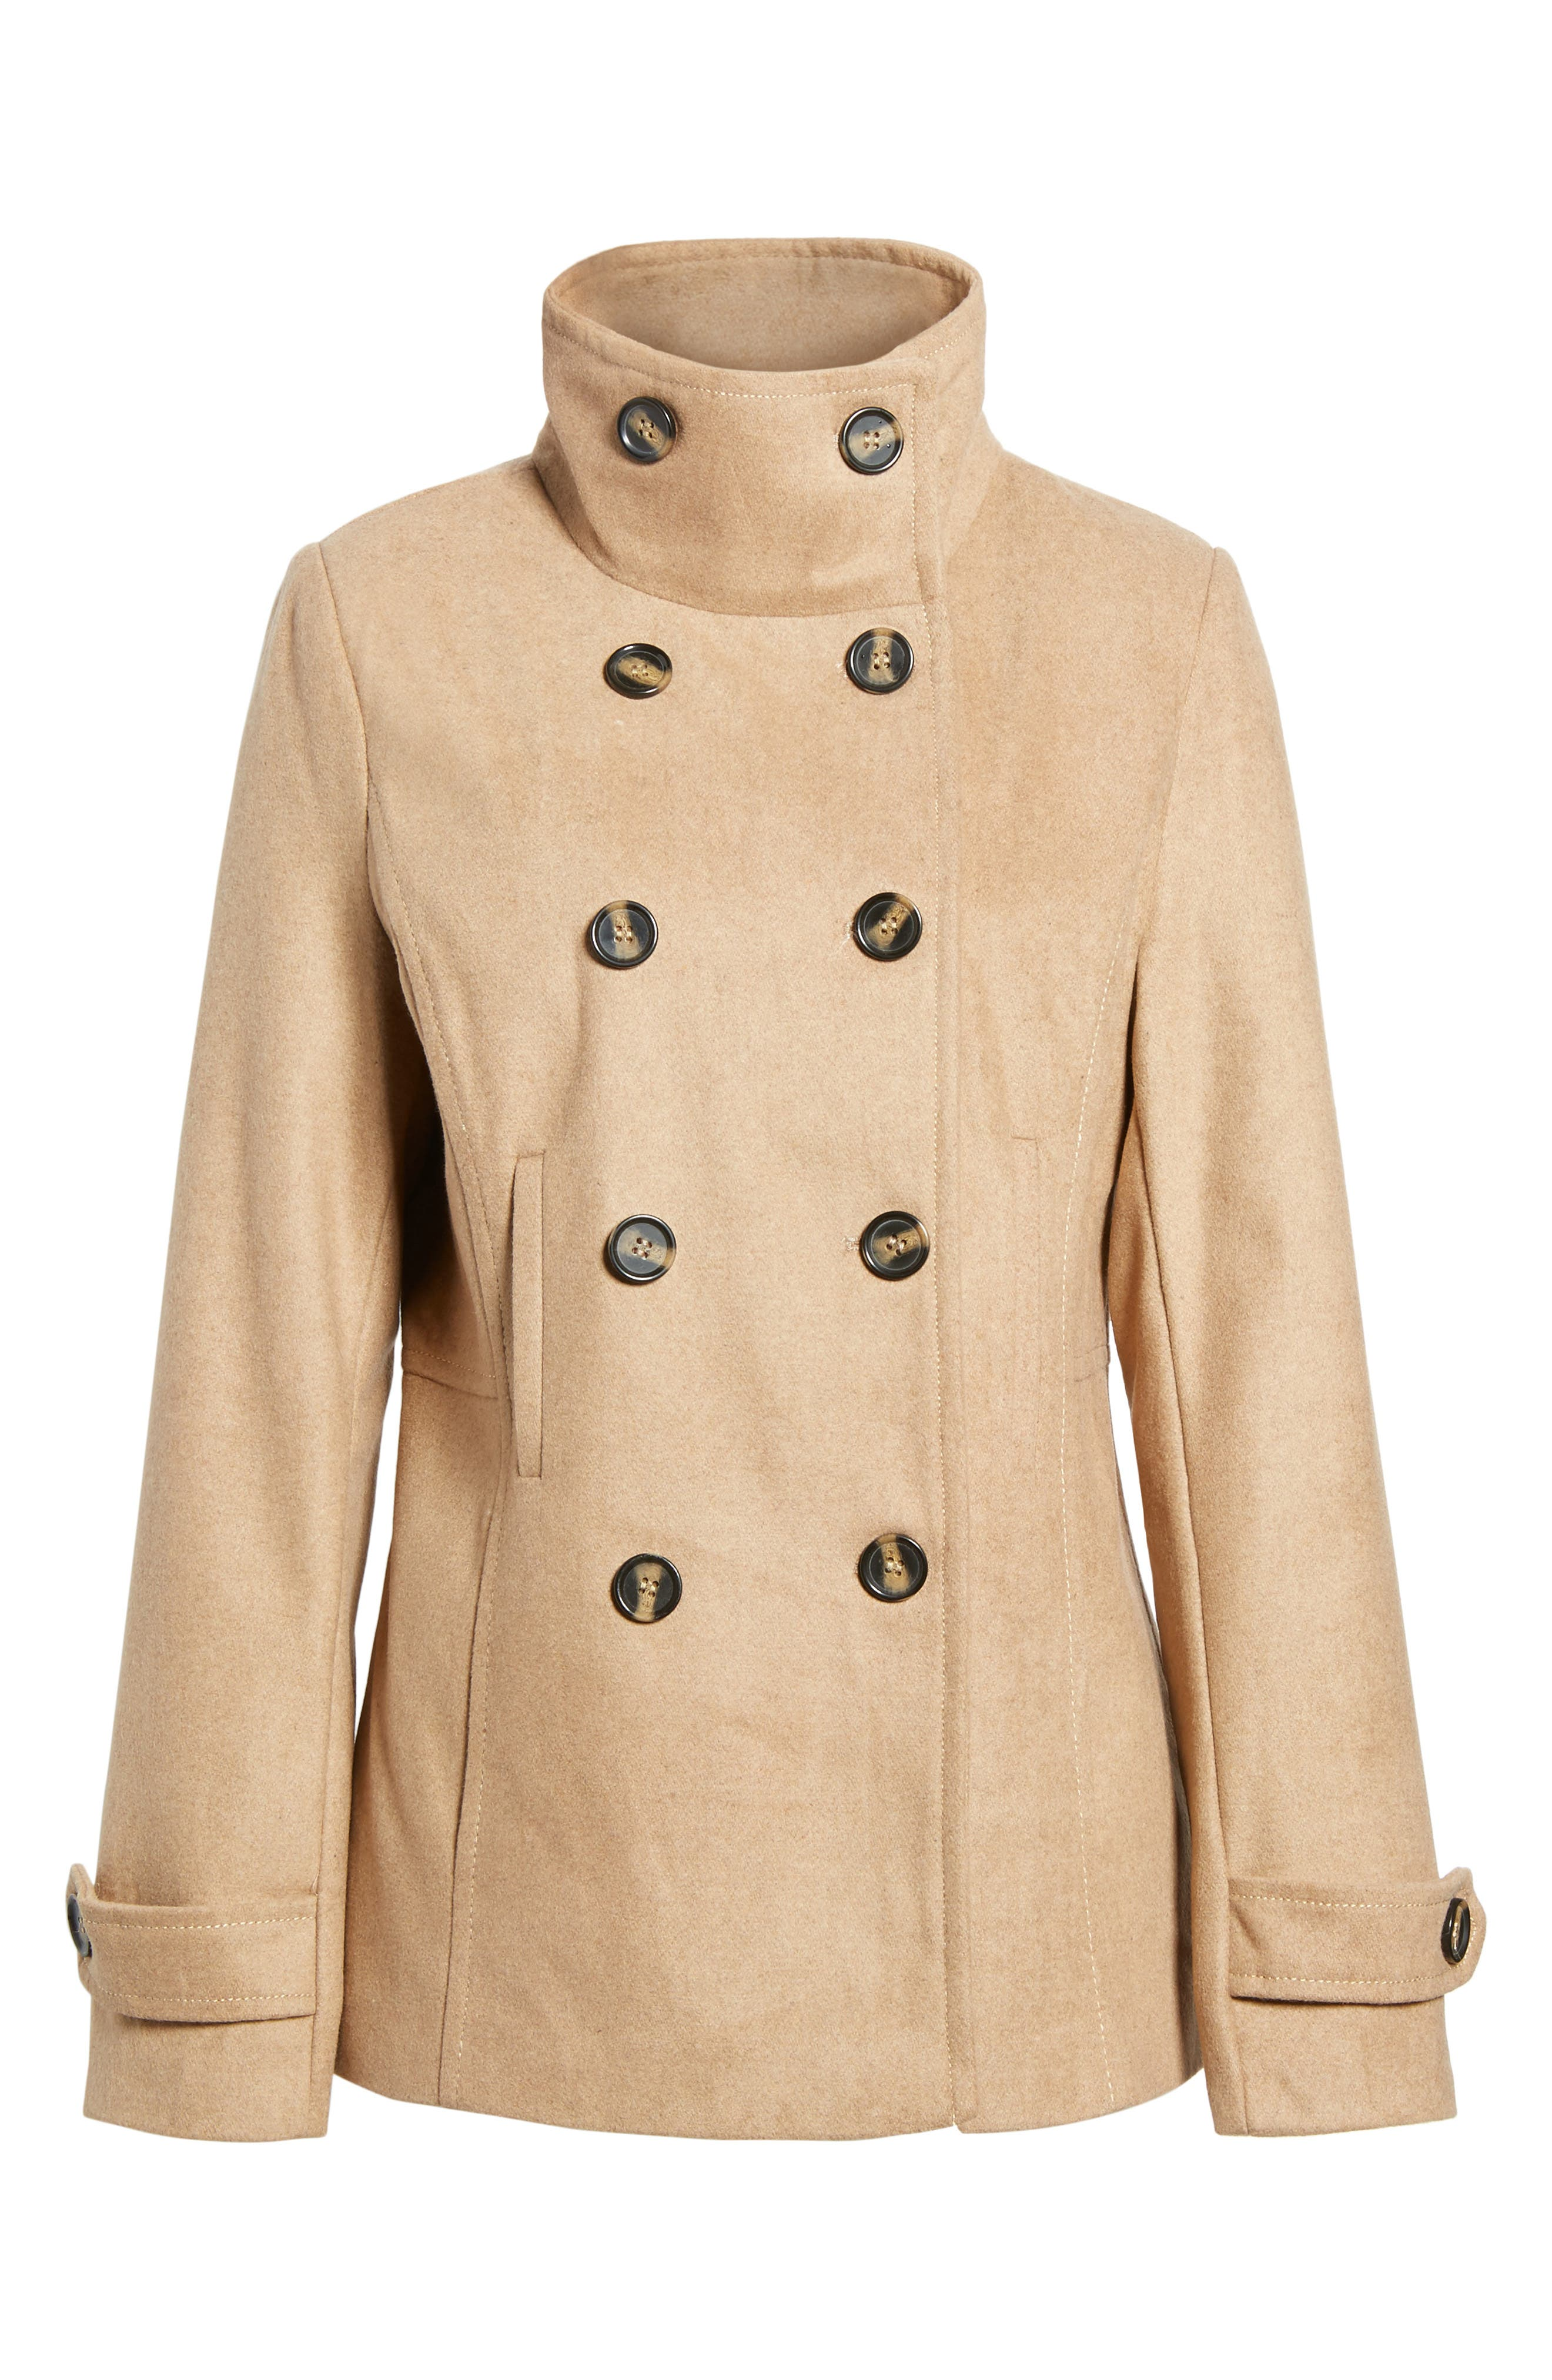 THREAD & SUPPLY Double Breasted Peacoat, Main, color, 200